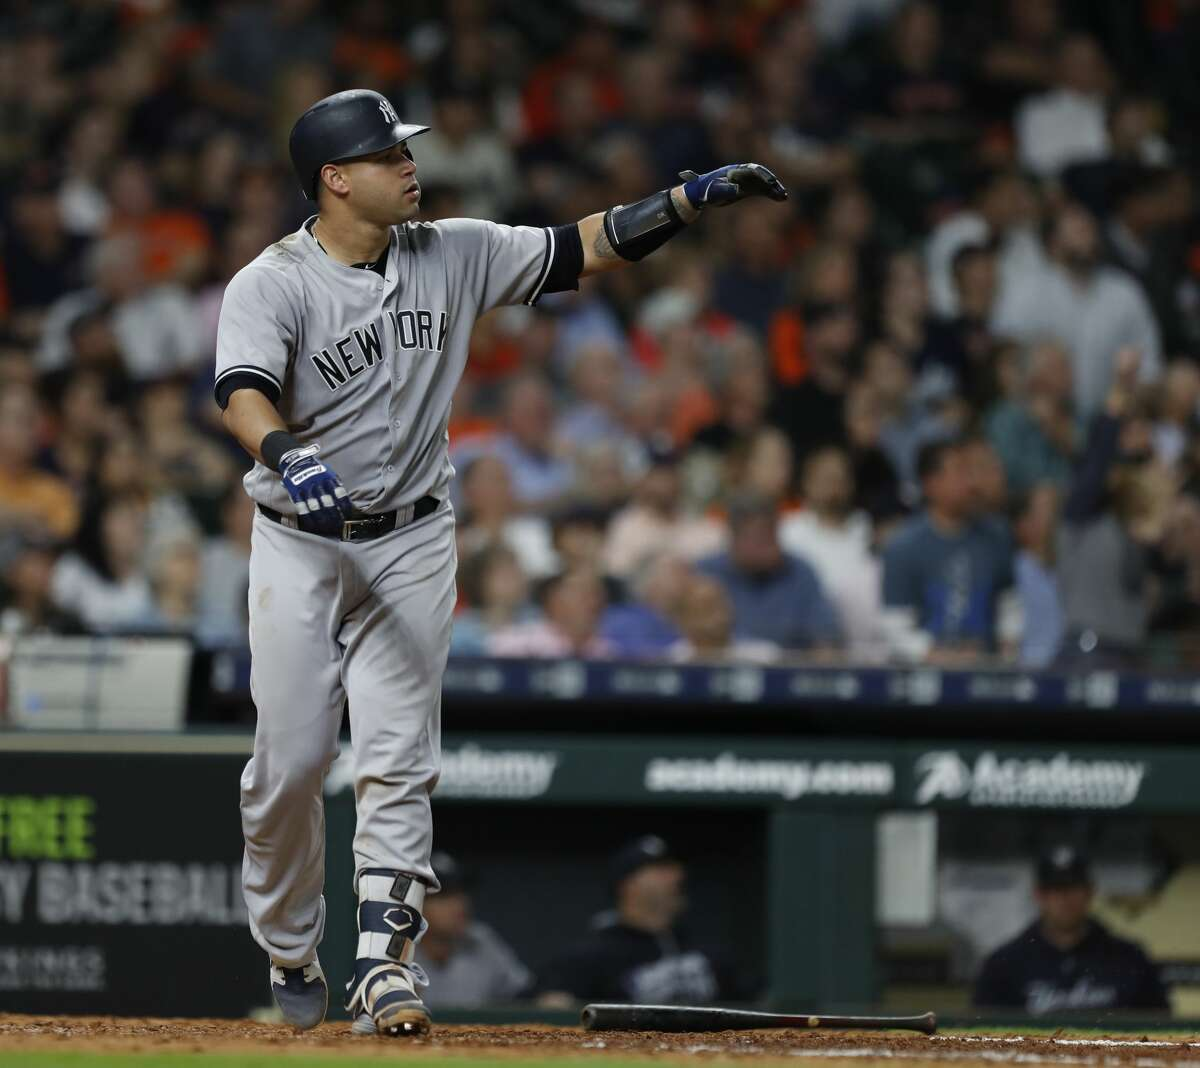 New York Yankees Gary Sanchez (24) reacts after hitting a three-run home run off of Houston Astros relief pitcher Ken Giles during the ninth inning of an MLB game at Minute Maid Park, Tuesday, May 1, 2018, in Houston. ( Karen Warren / Houston Chronicle )